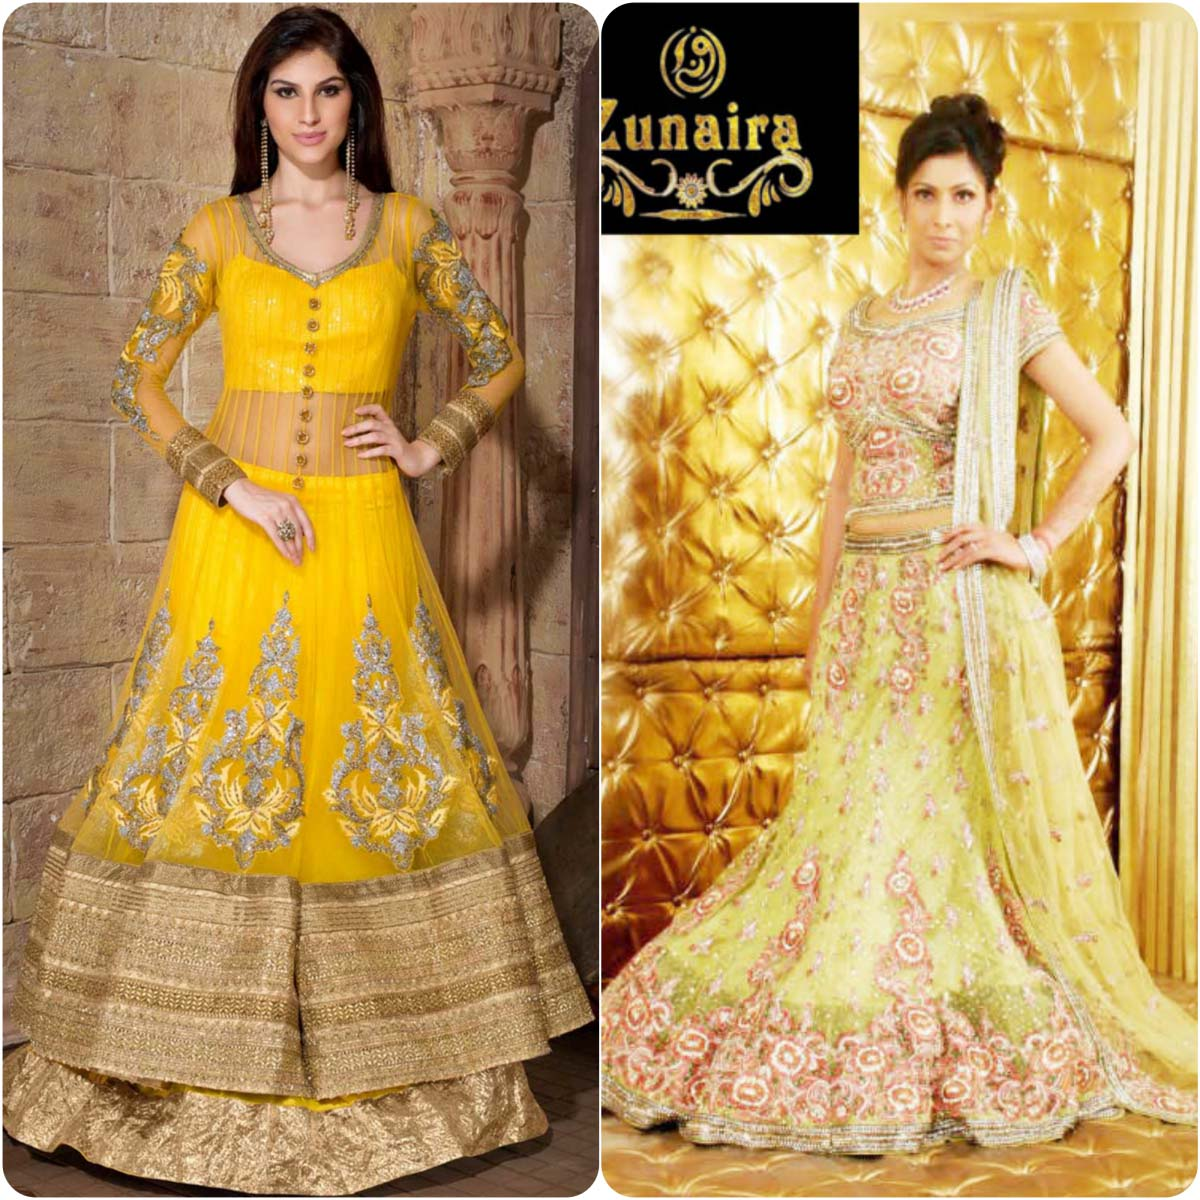 Beautiful Yellow Mehndi Dresses for Wedding Brides 2016-2017 (24)